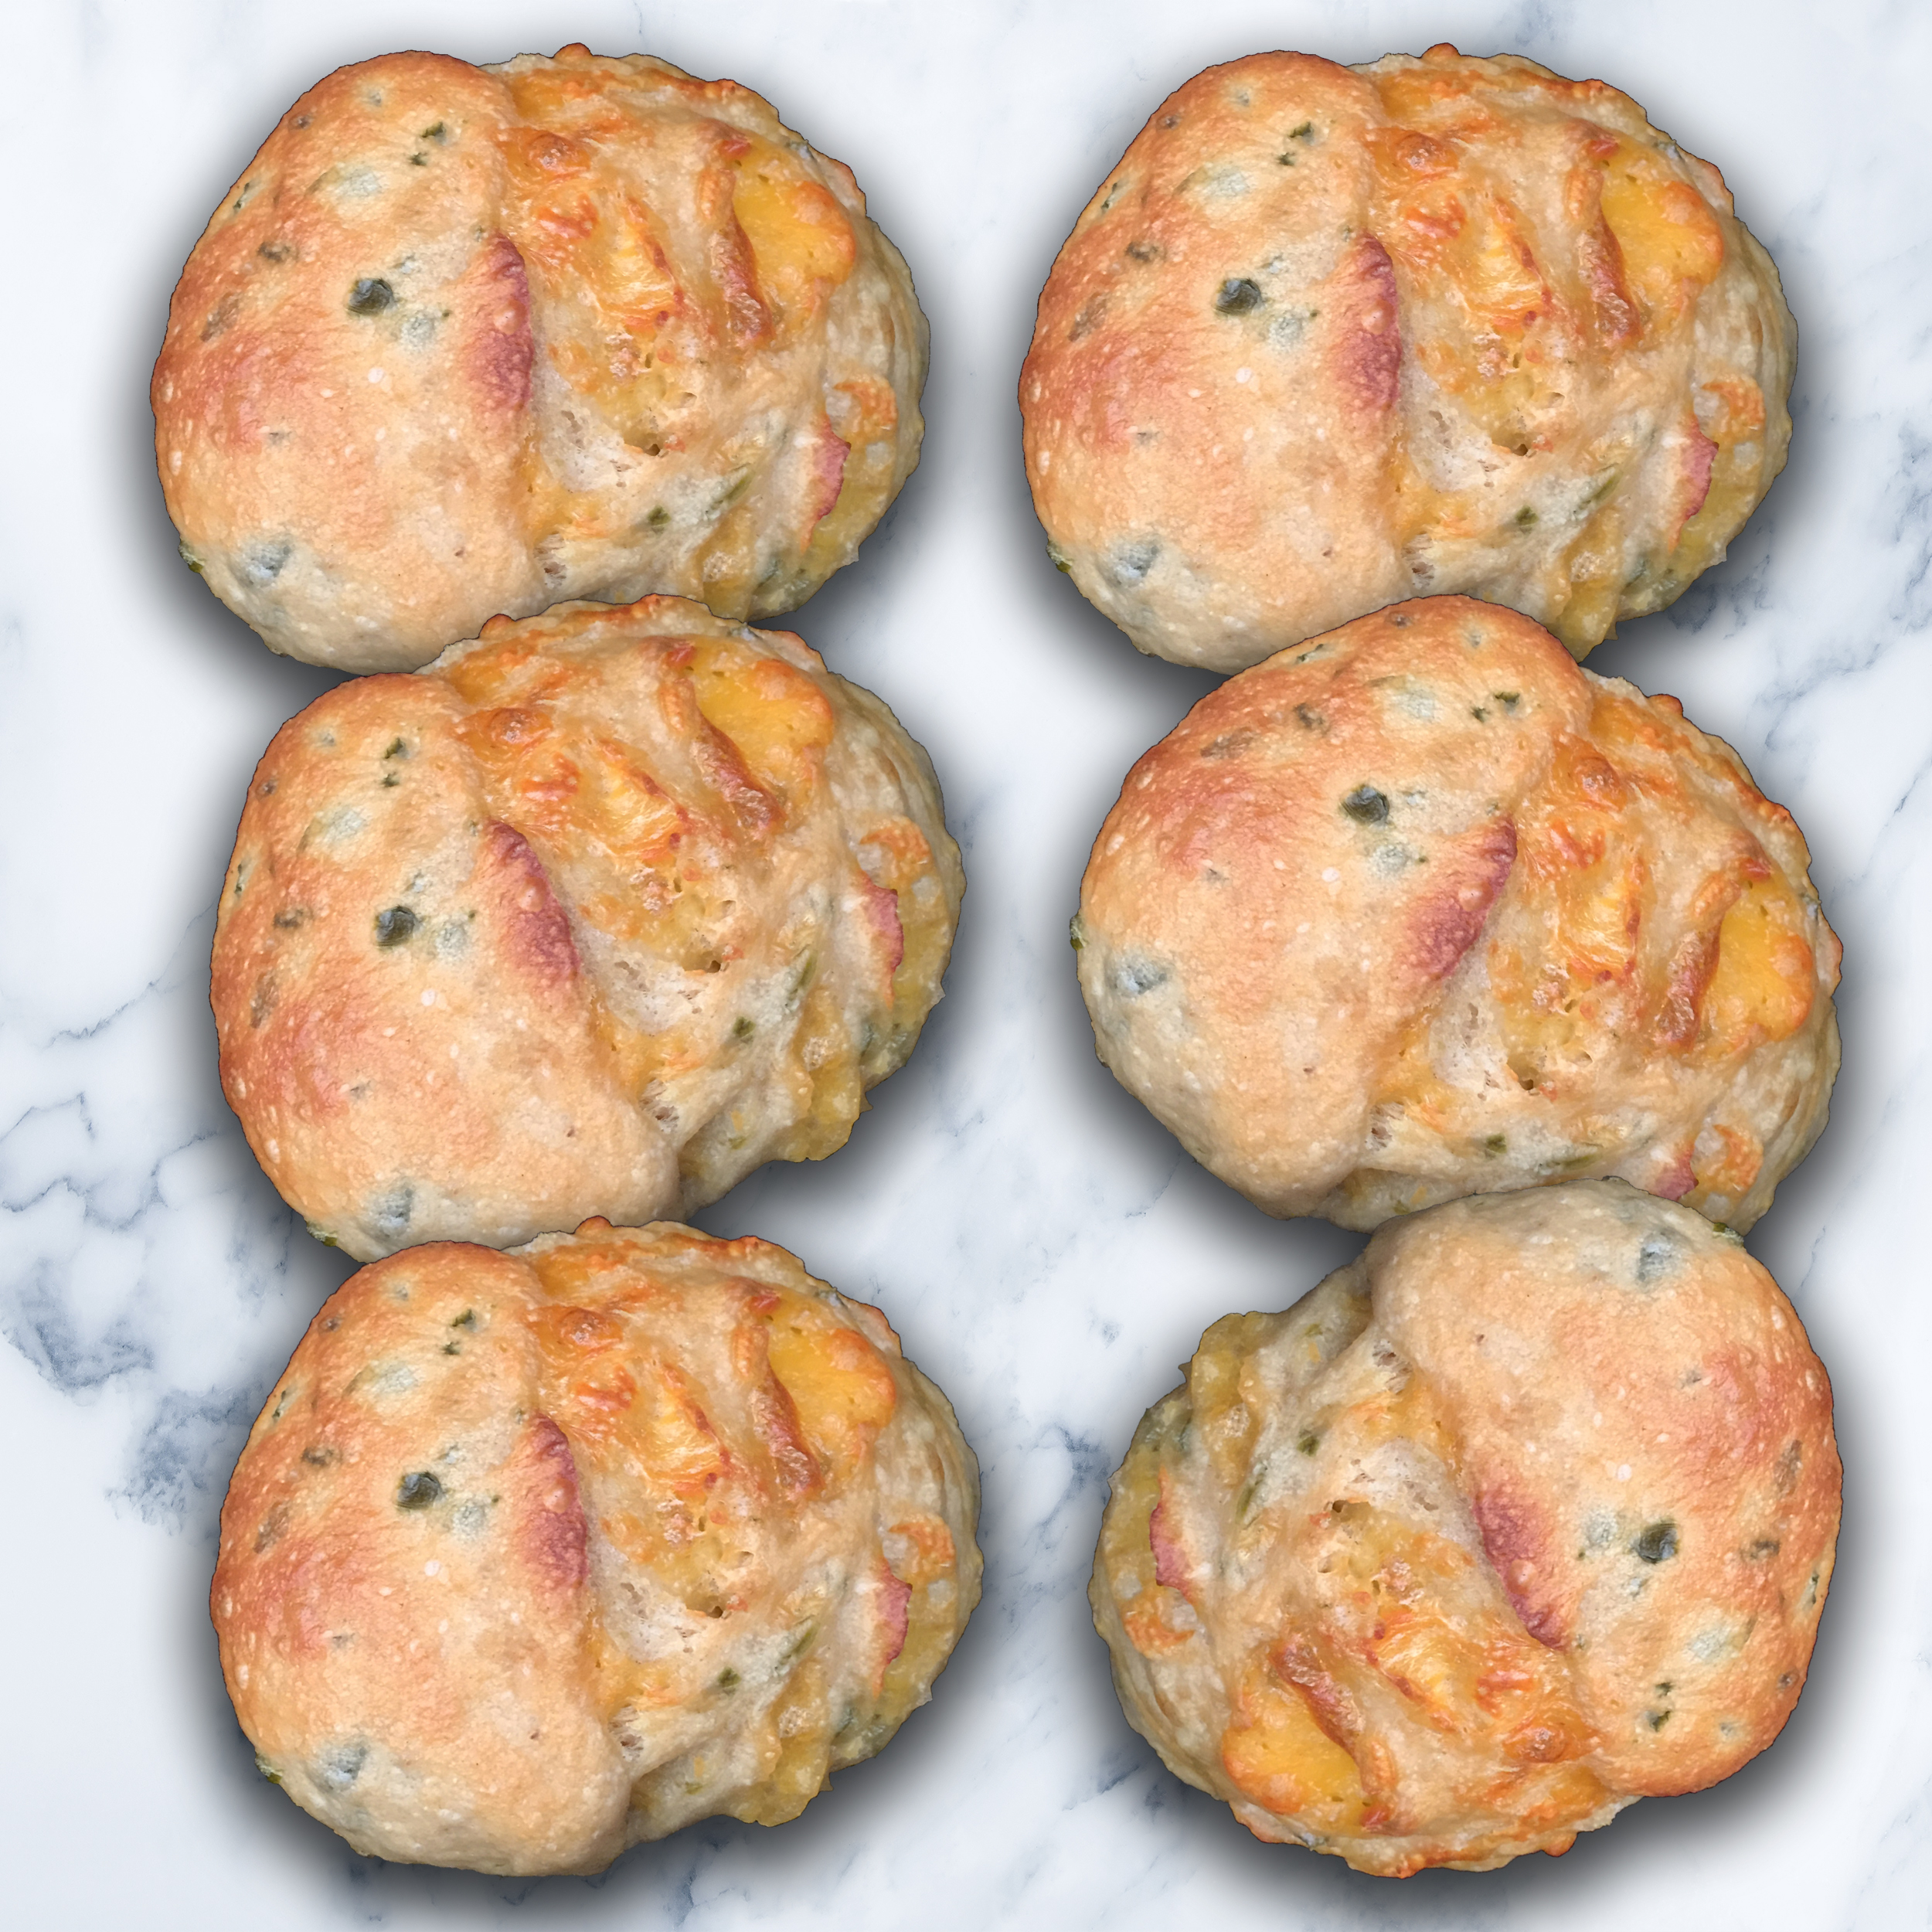 6 JALAPENO CHEESE SMALL BOULES